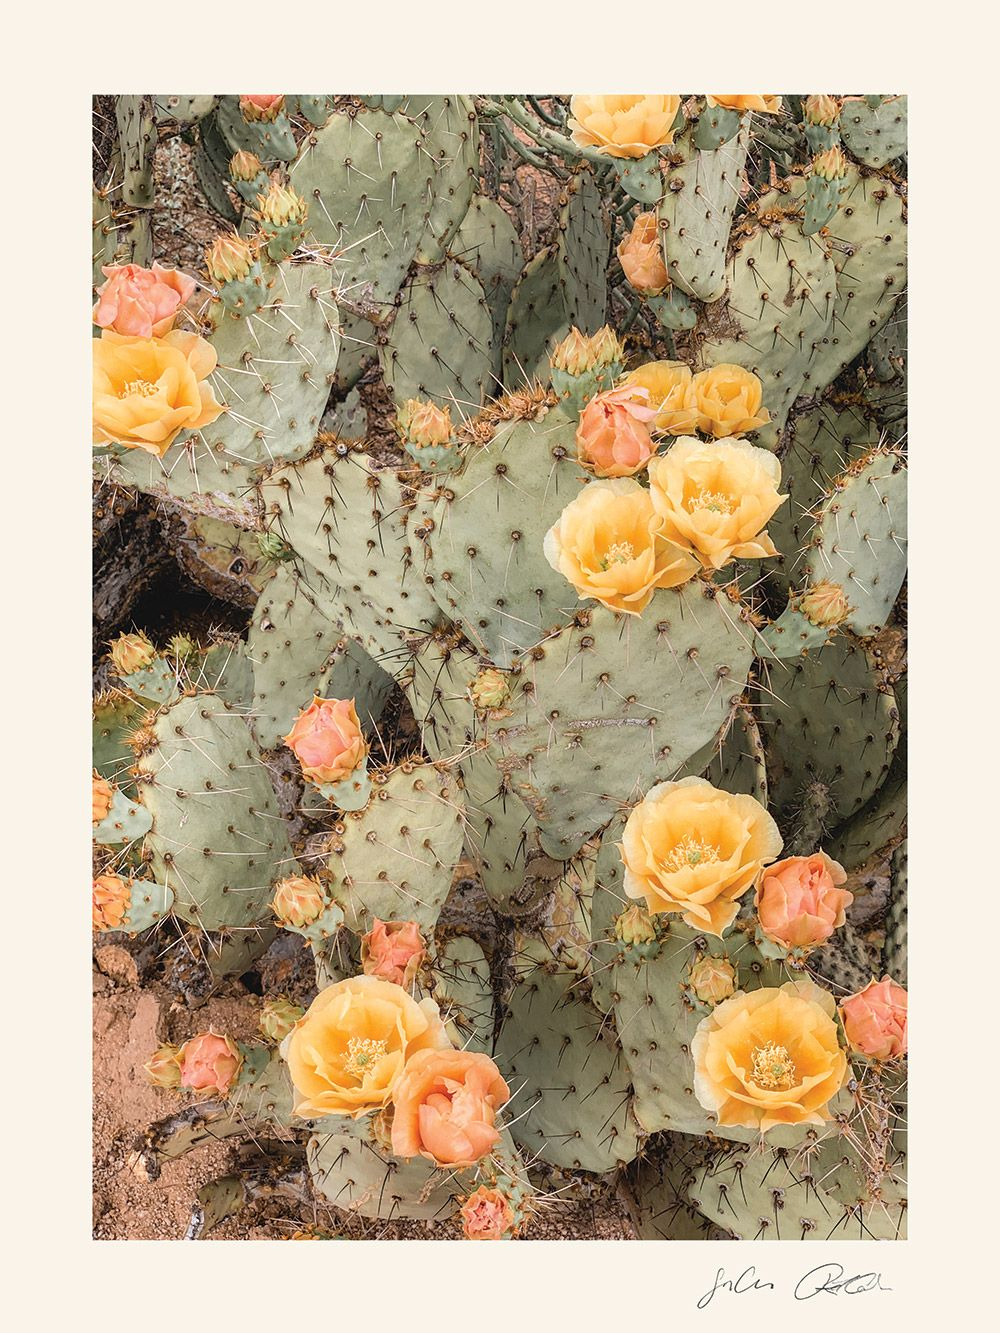 Prickly Pear Blooms Digital Print – The Joshua Tre